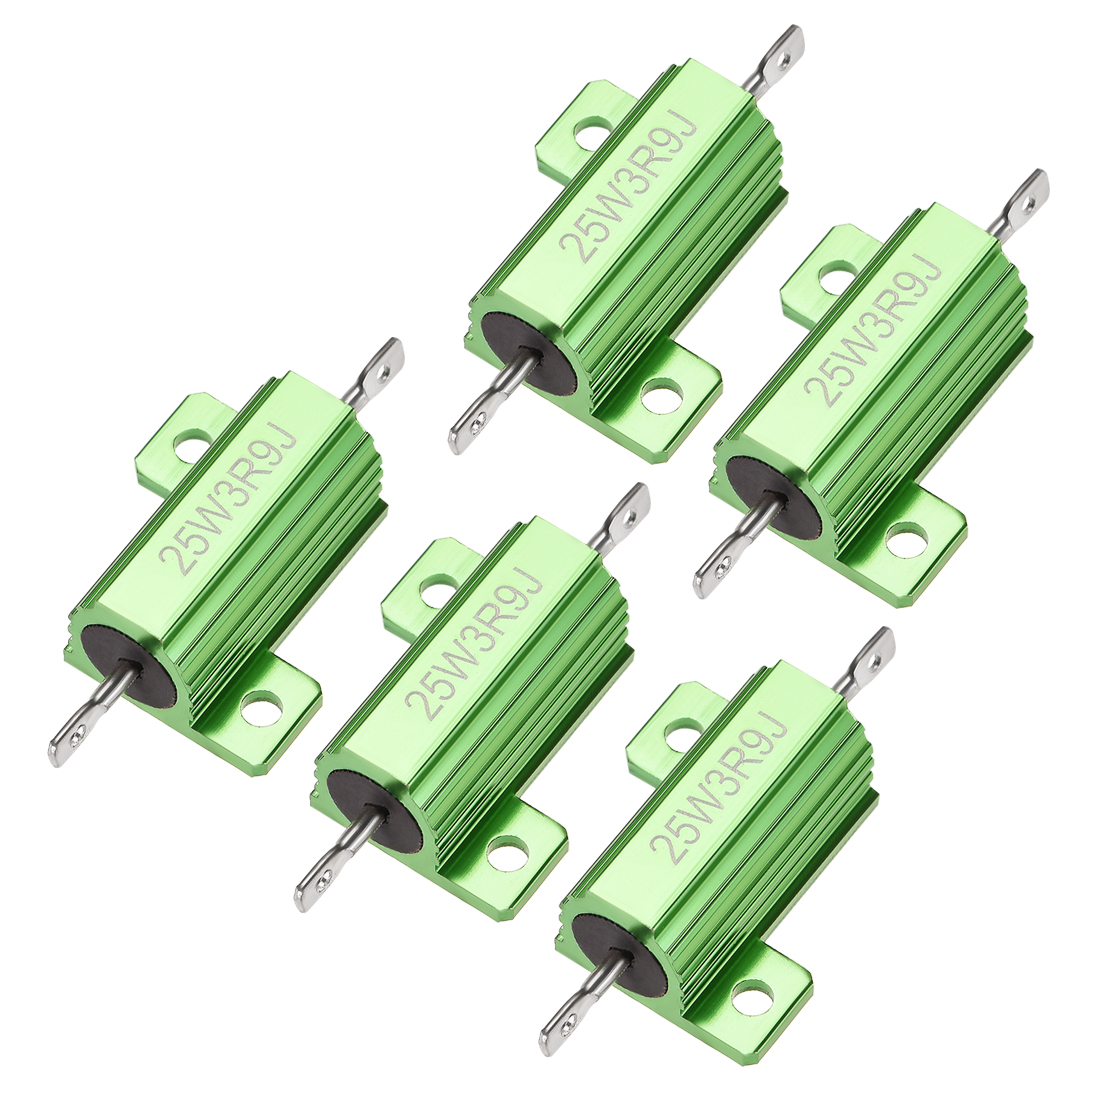 25W 3.9 Ohm 5% Aluminum Housing Resistor Wirewound Resistor Green Tone 5 Pcs